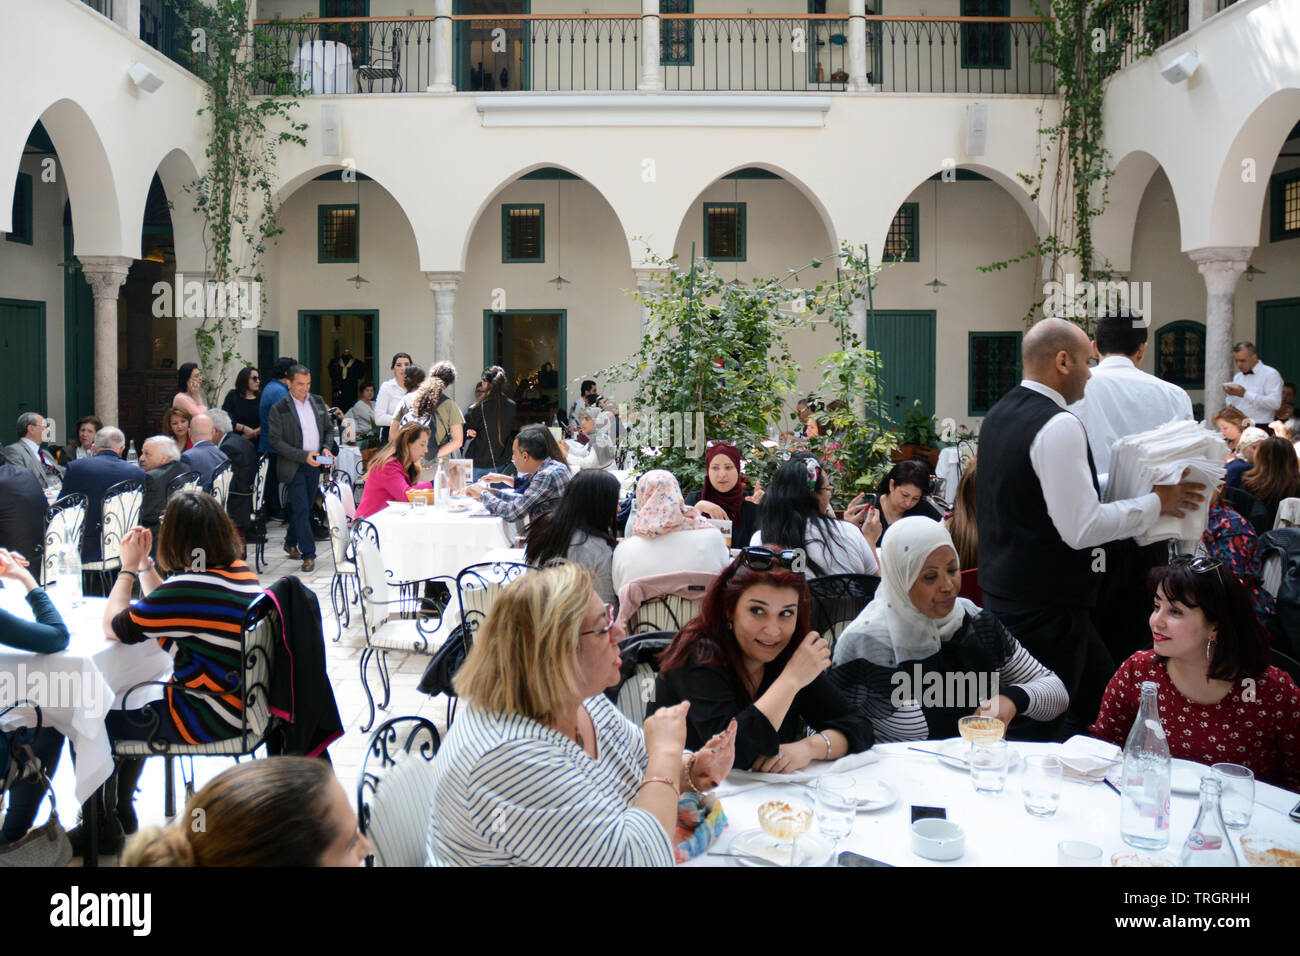 Tunisians having lunch at Fondouk El Attarine - a fine dining restaurant serving traditional Tunisian cuisine in the Medina of Tunis, Tunisia. Stock Photo